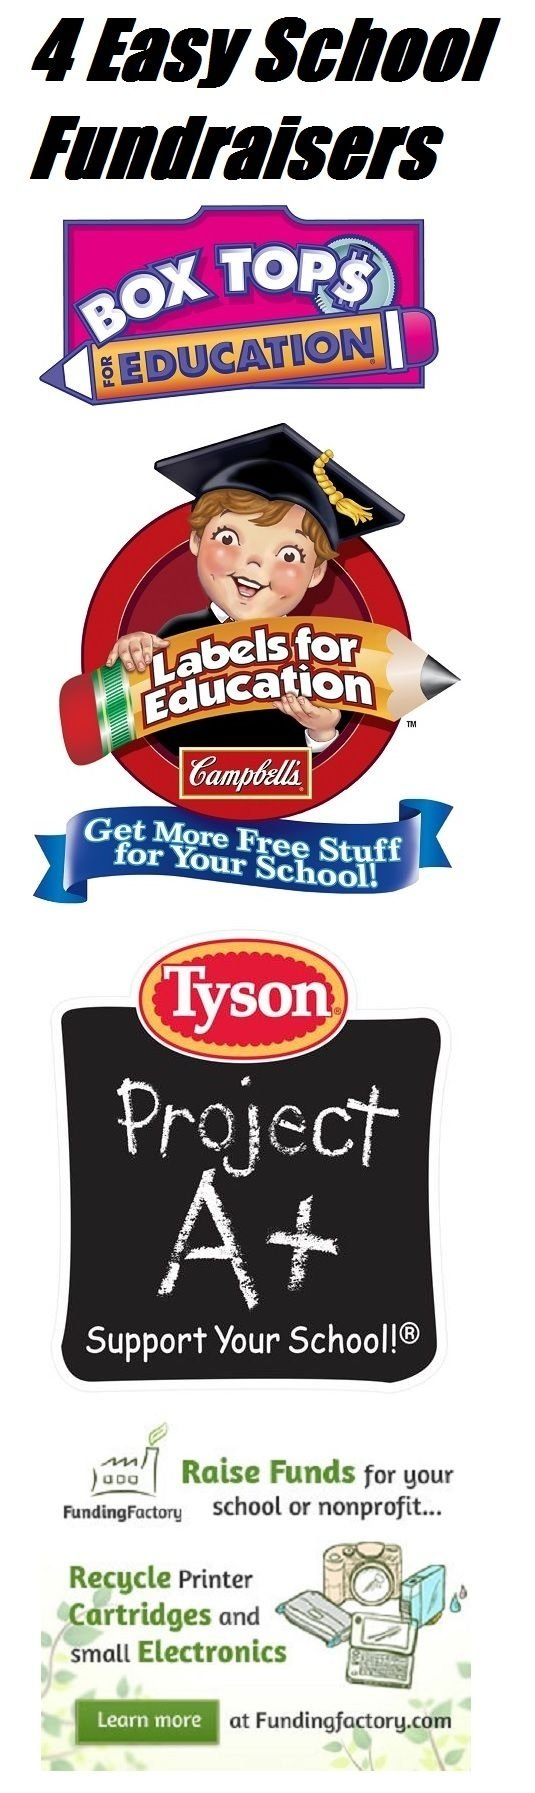 169 best school fundraising ideas images on pinterest | school